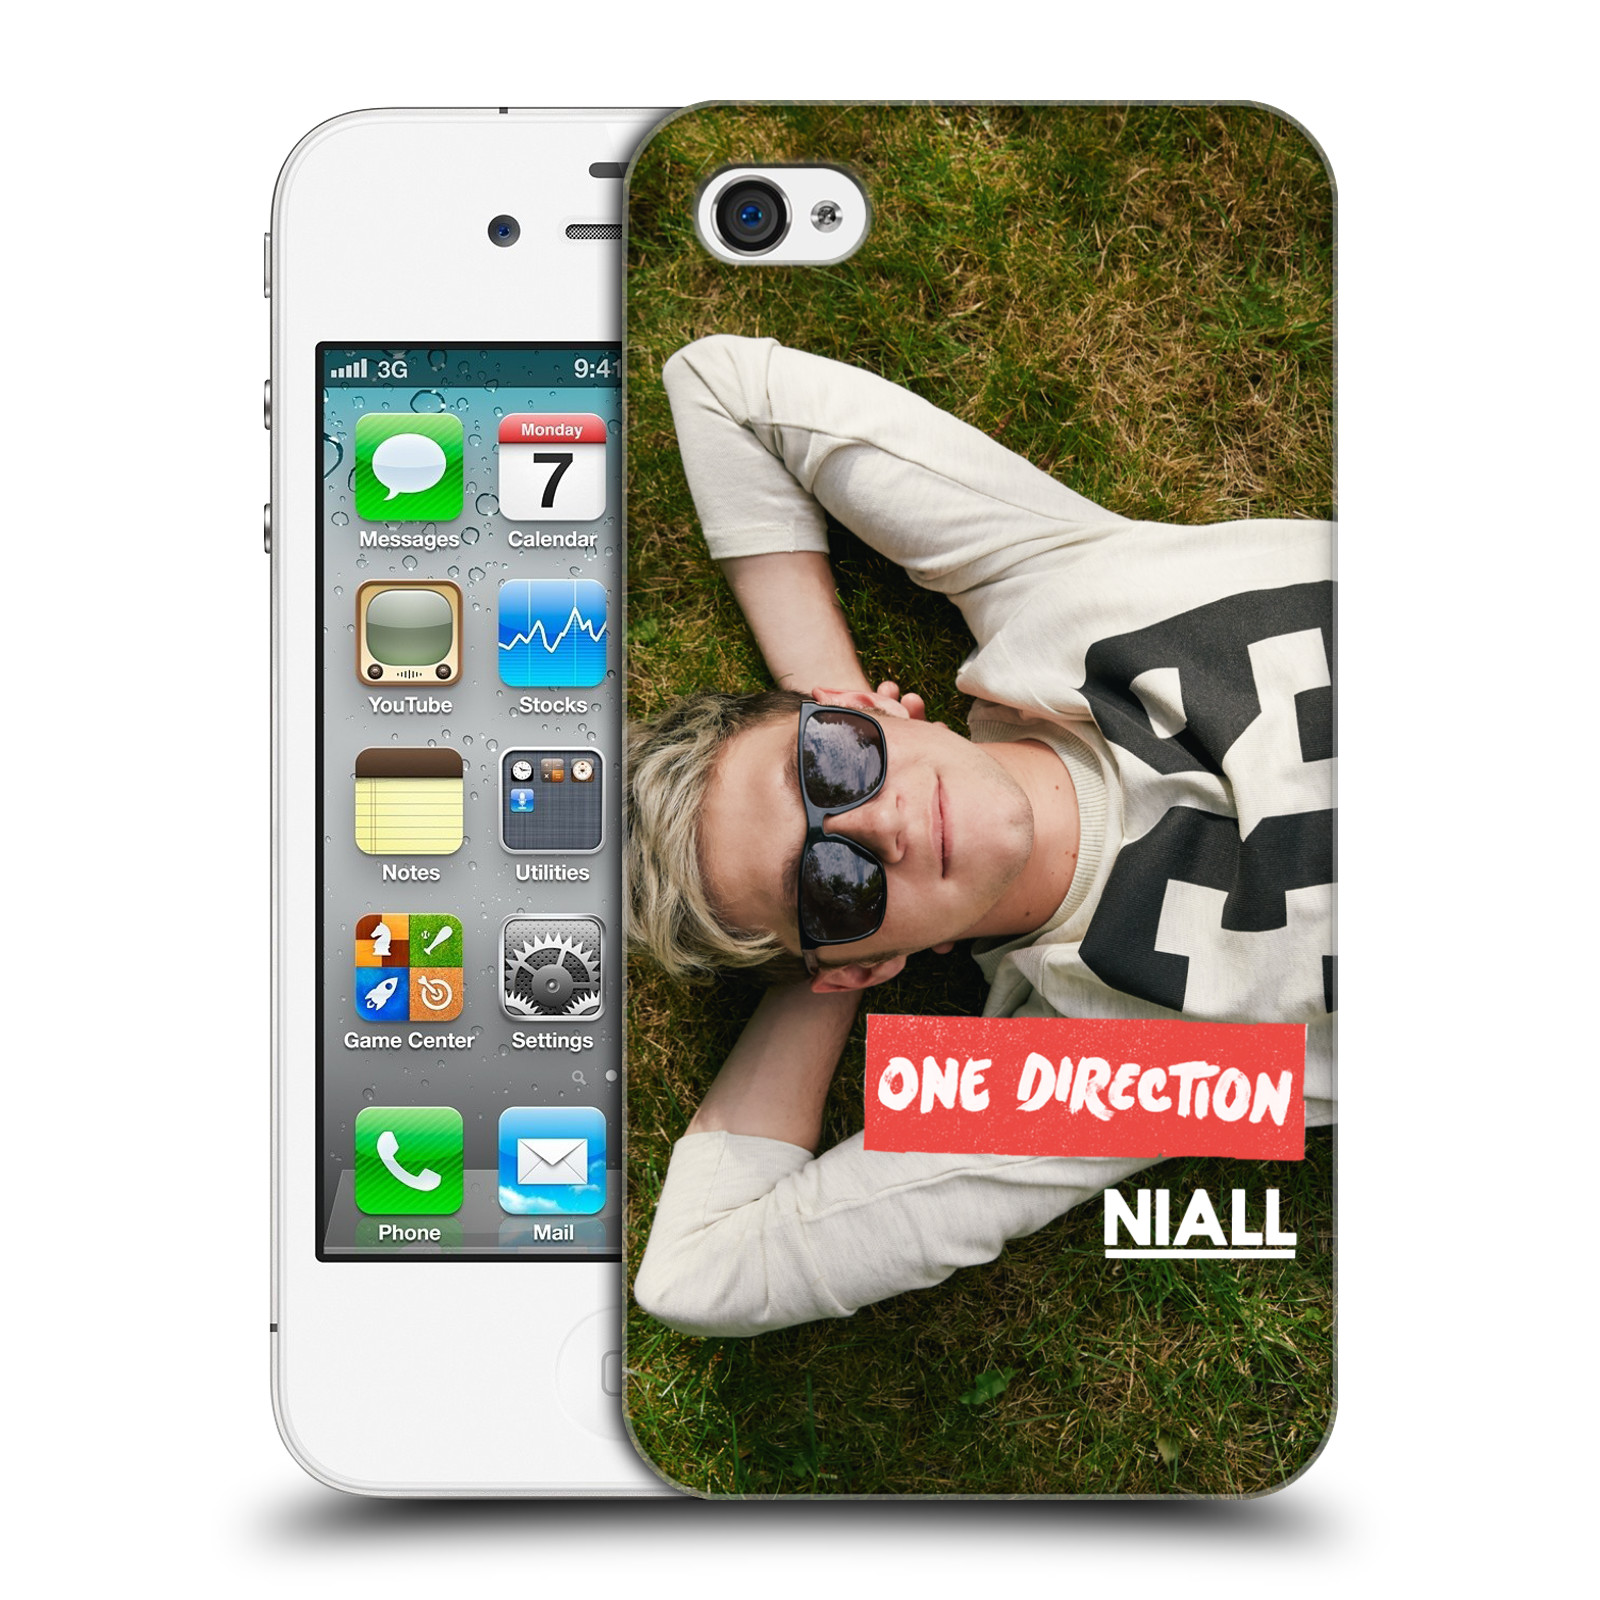 OFFICIAL-ONE-DIRECTION-NIALL-HORAN-PHOTO-HARD-BACK-CASE-FOR-APPLE-iPHONE-4-4S